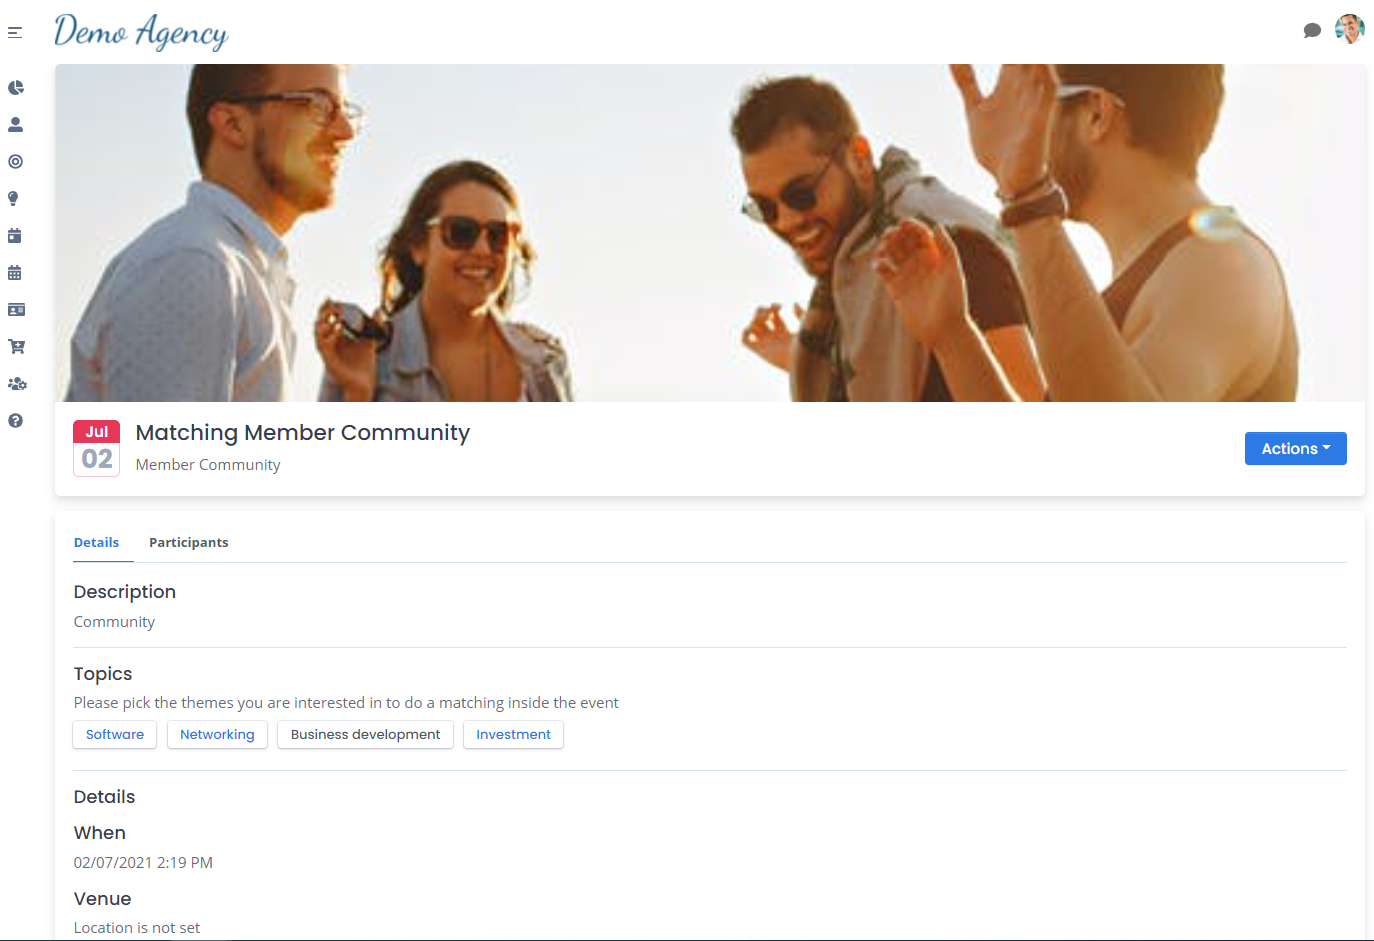 A powerful new community and membership matchmaking platform for matching people within events and groups